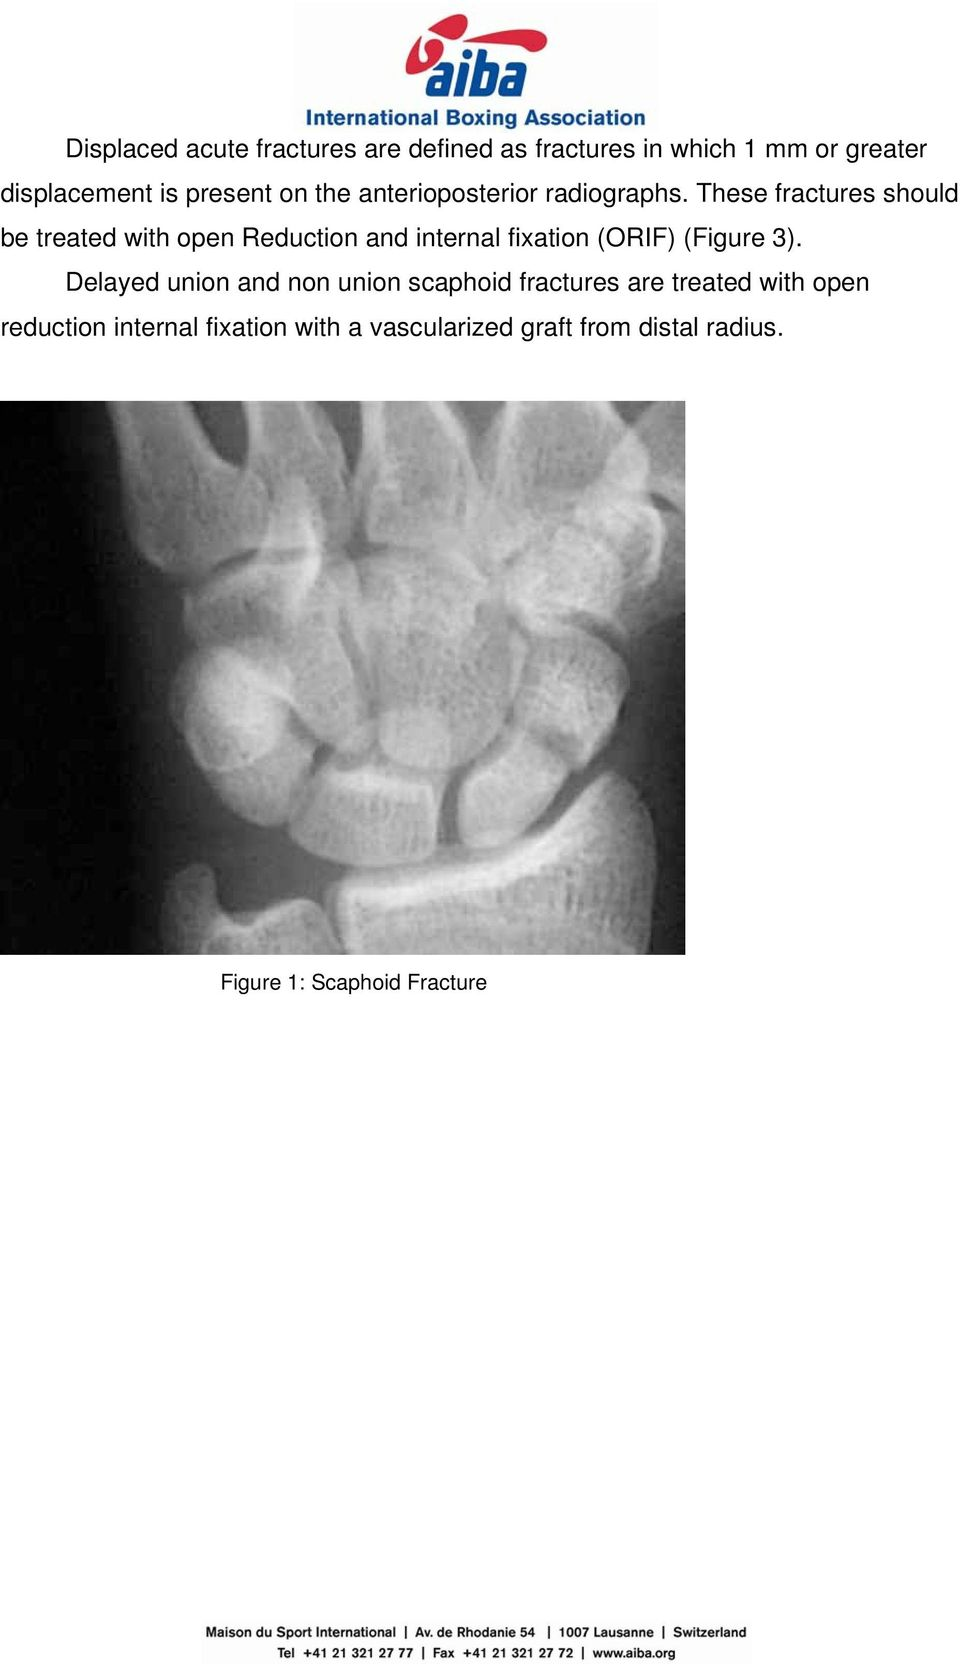 These fractures should be treated with open Reduction and internal fixation (ORIF) (Figure 3).